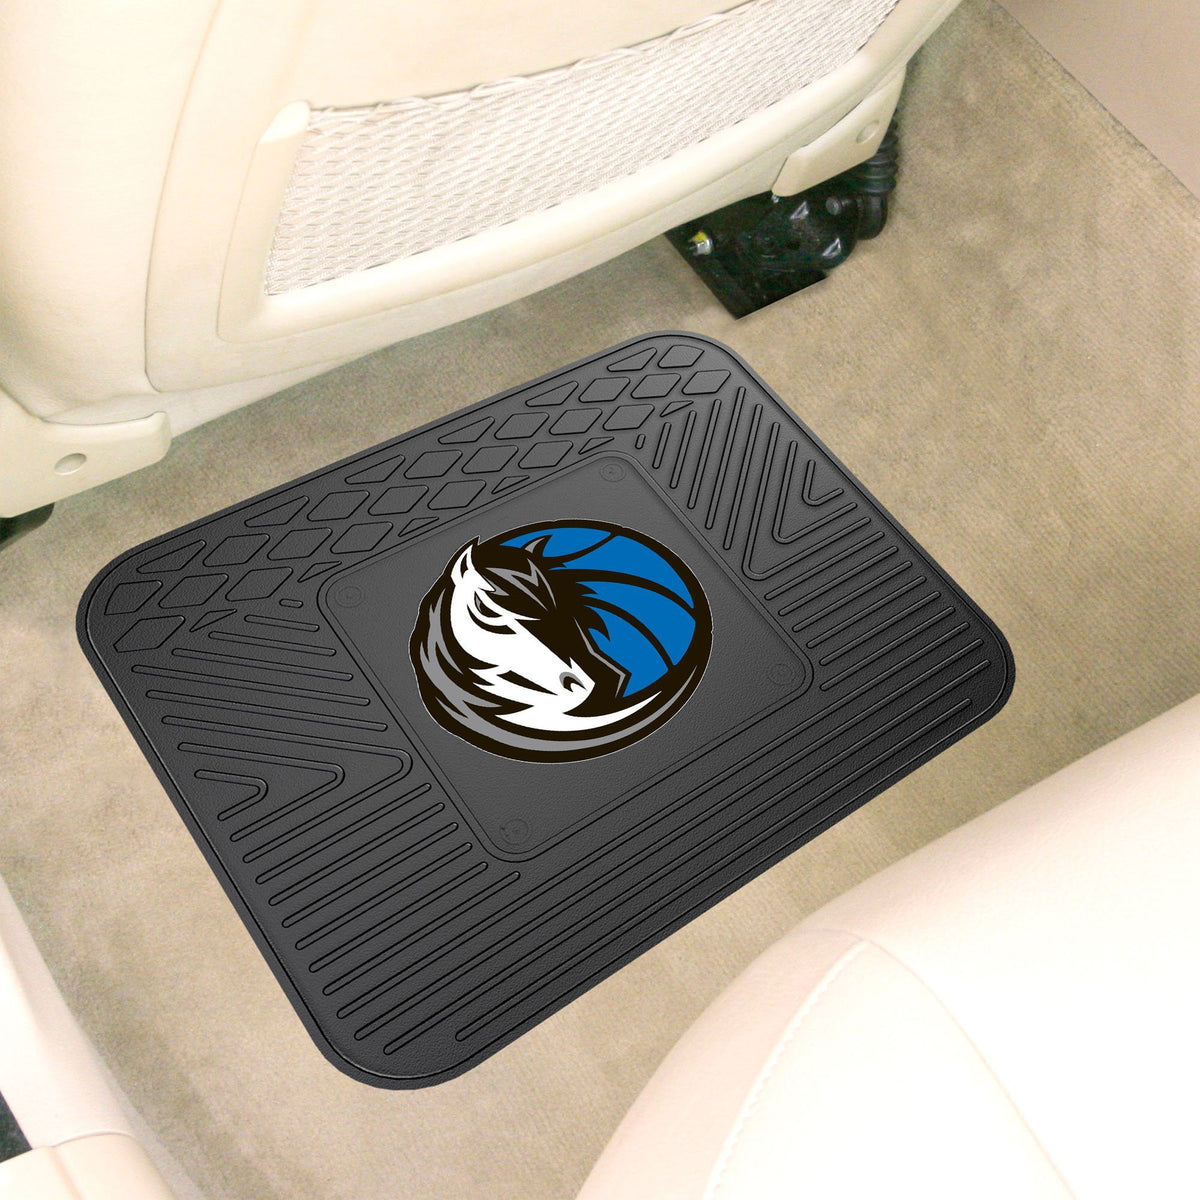 NBA - Utility Mat NBA Mats, Rear Car Mats, Utility Mat, NBA, Auto Fan Mats Dallas Mavericks